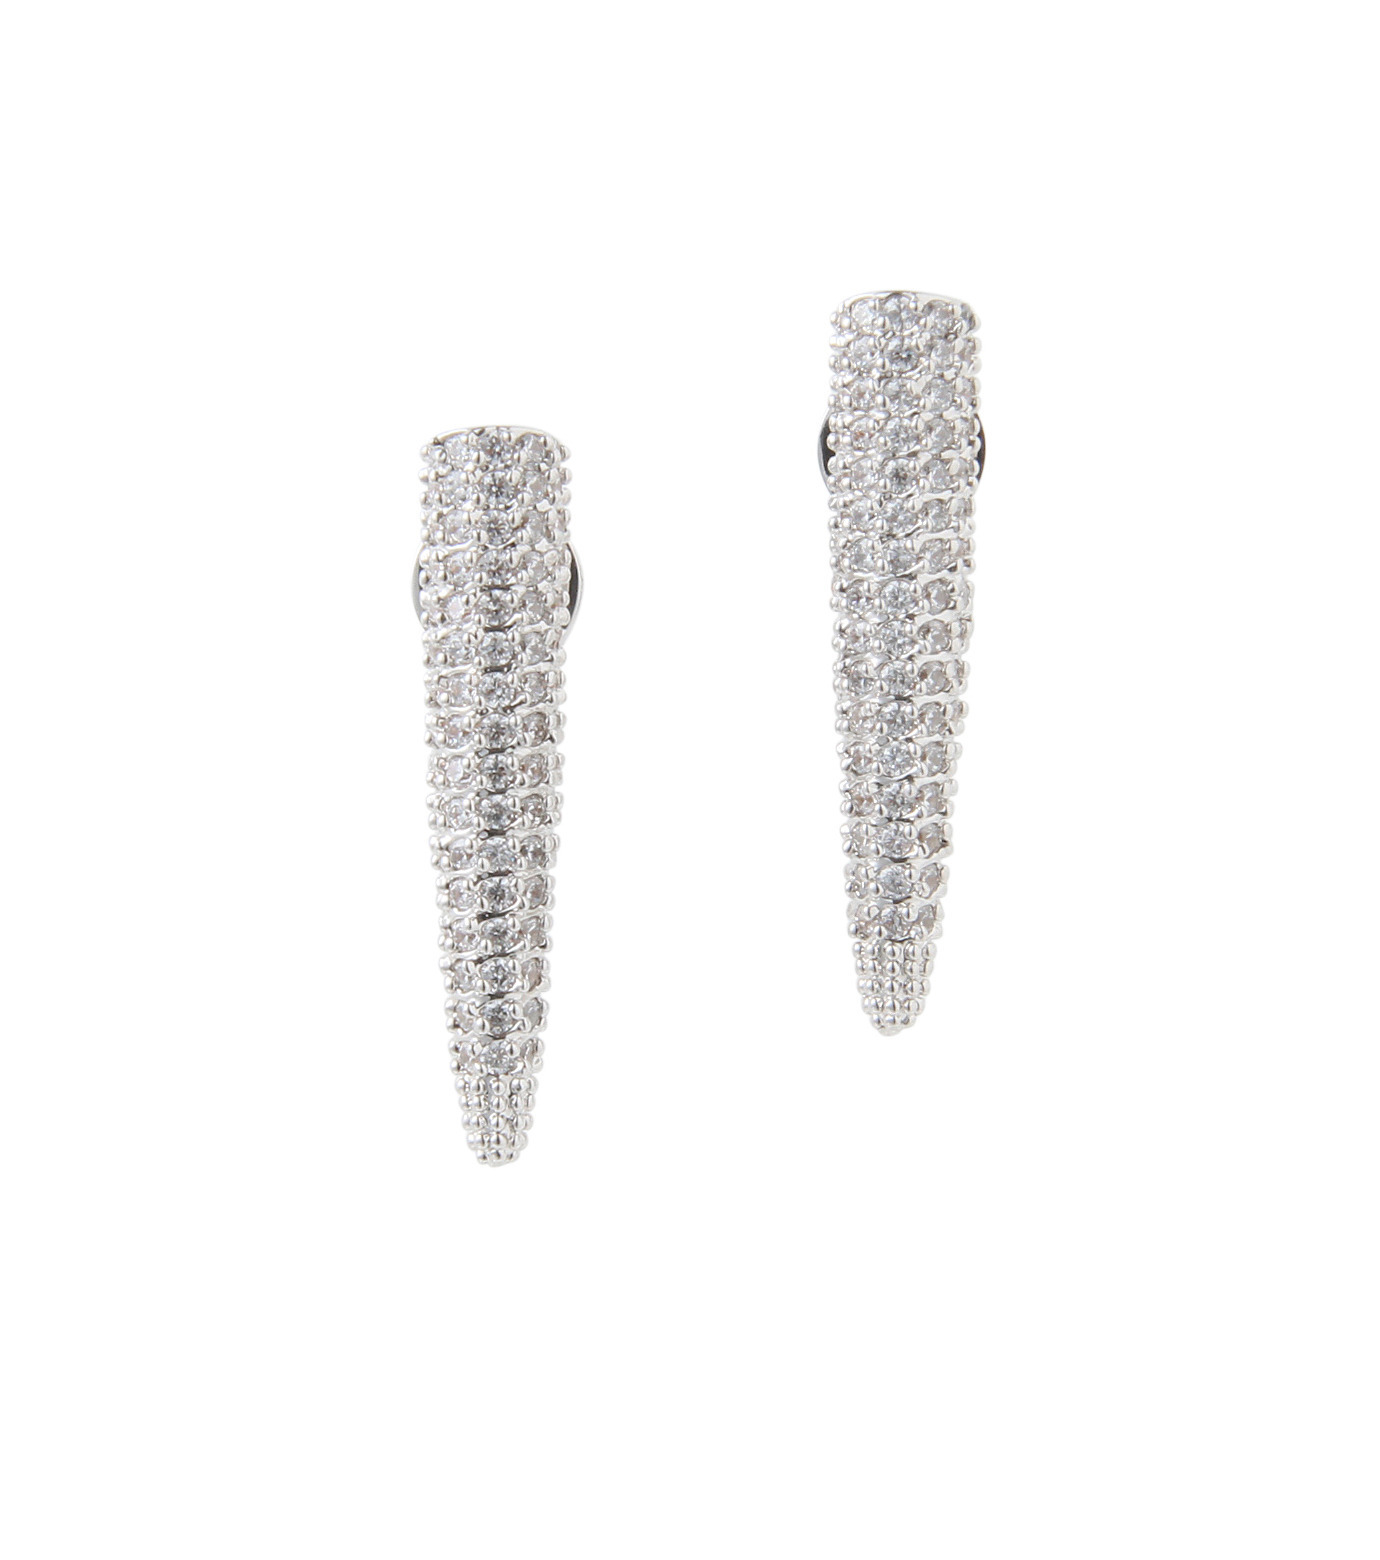 Eddie Borgo(エディ・ボルゴ)のMINI PAVE SPIKE EARRING-SILVER-ER1604P-R-1 拡大詳細画像1